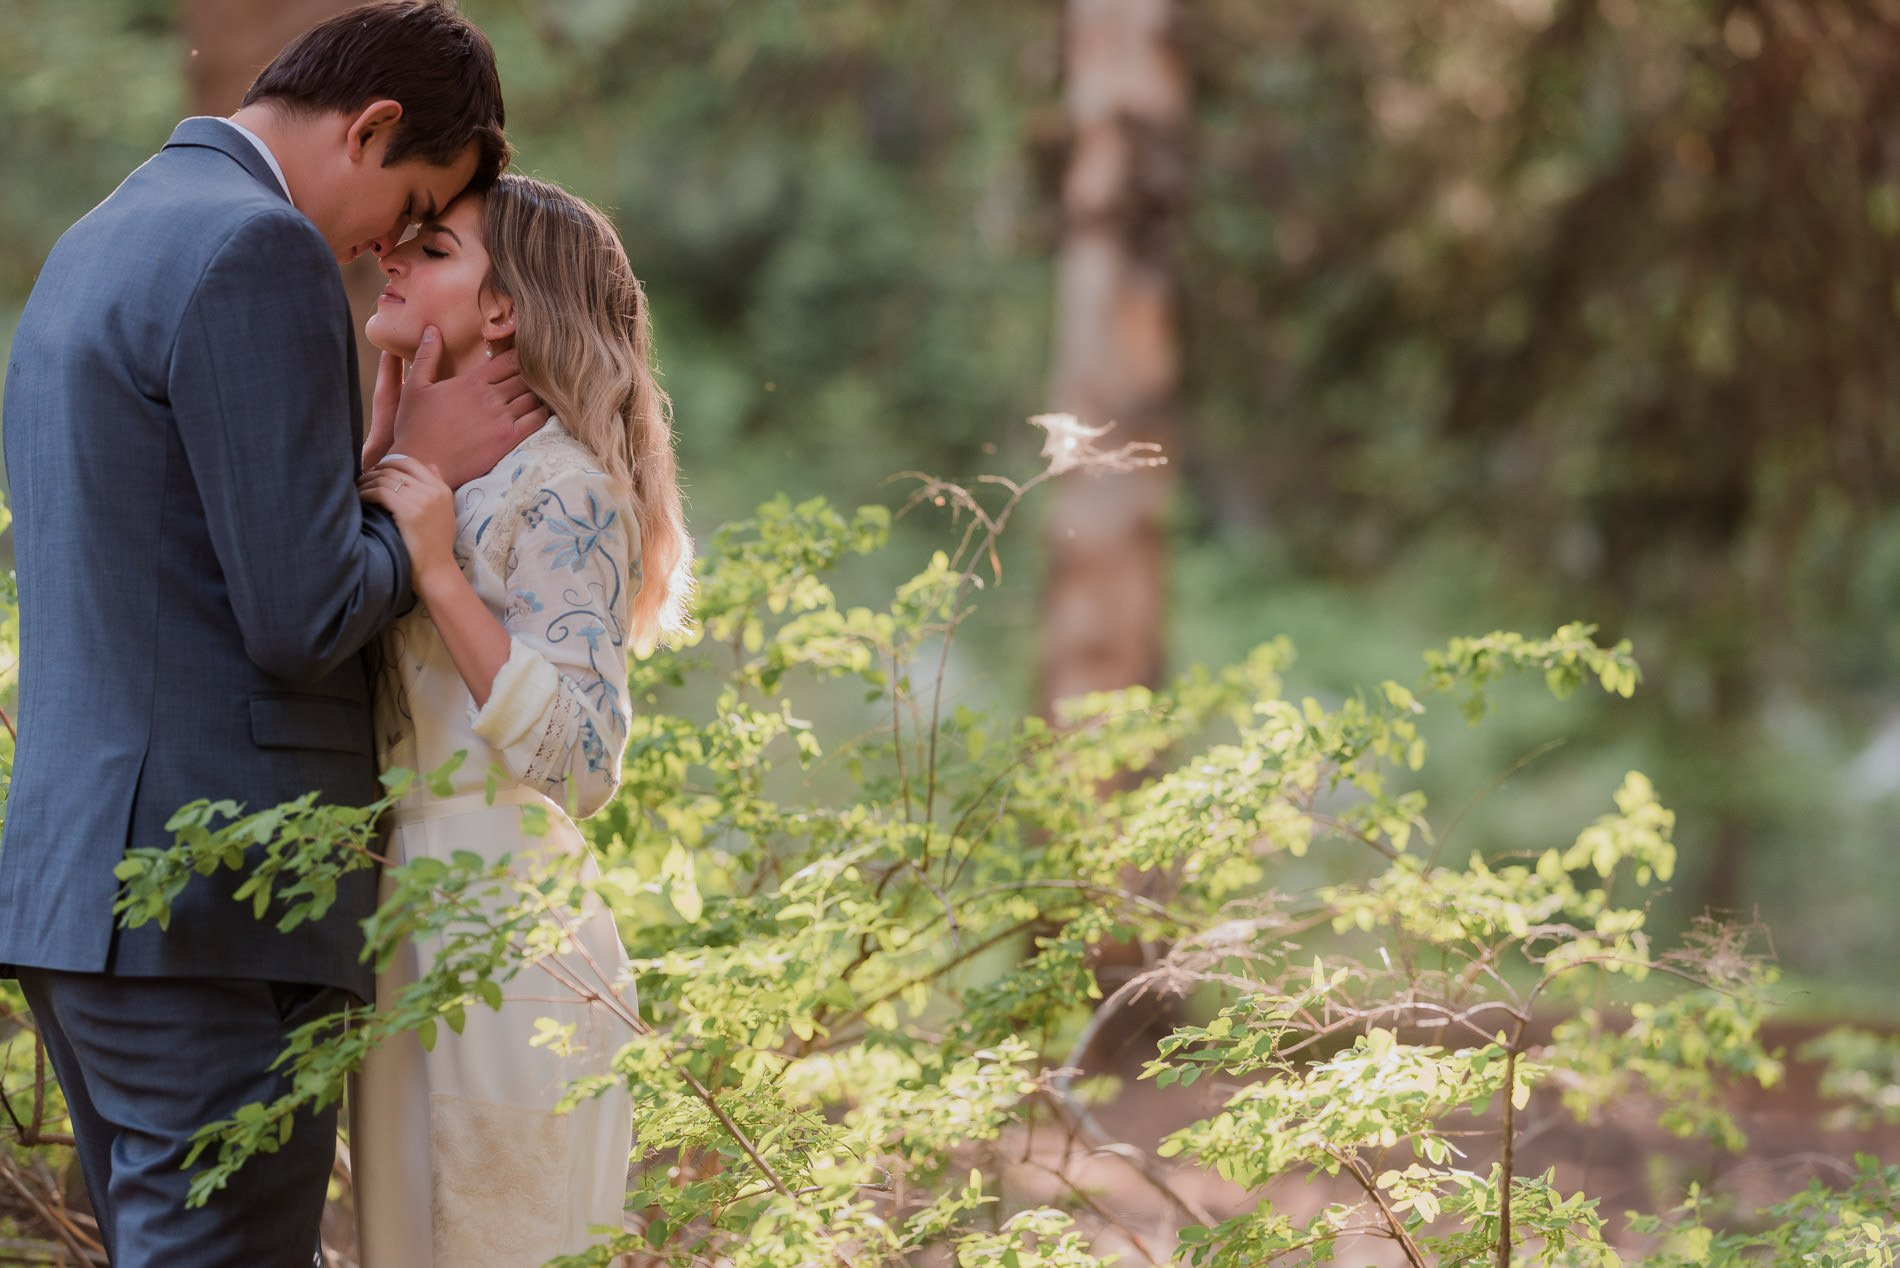 A man pulling a girls face close for a kiss among trees and bushes for Utah engagement photography.